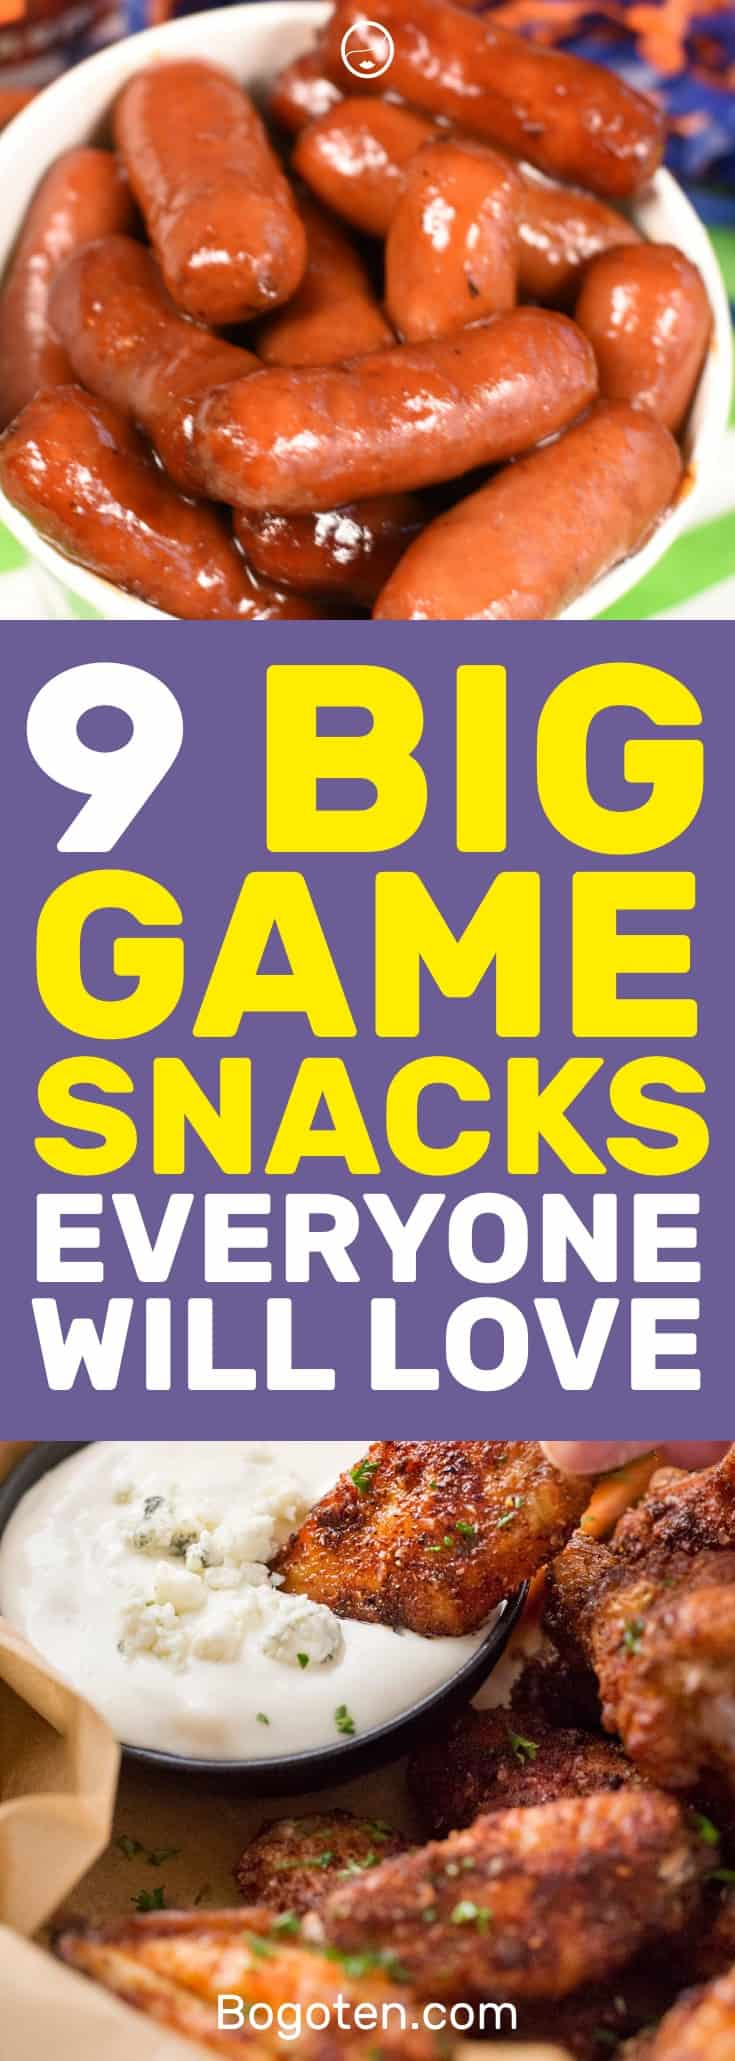 Looking for food ideas for your big game party? Look no further! Here are 9 delicious snacks that everyone will love.